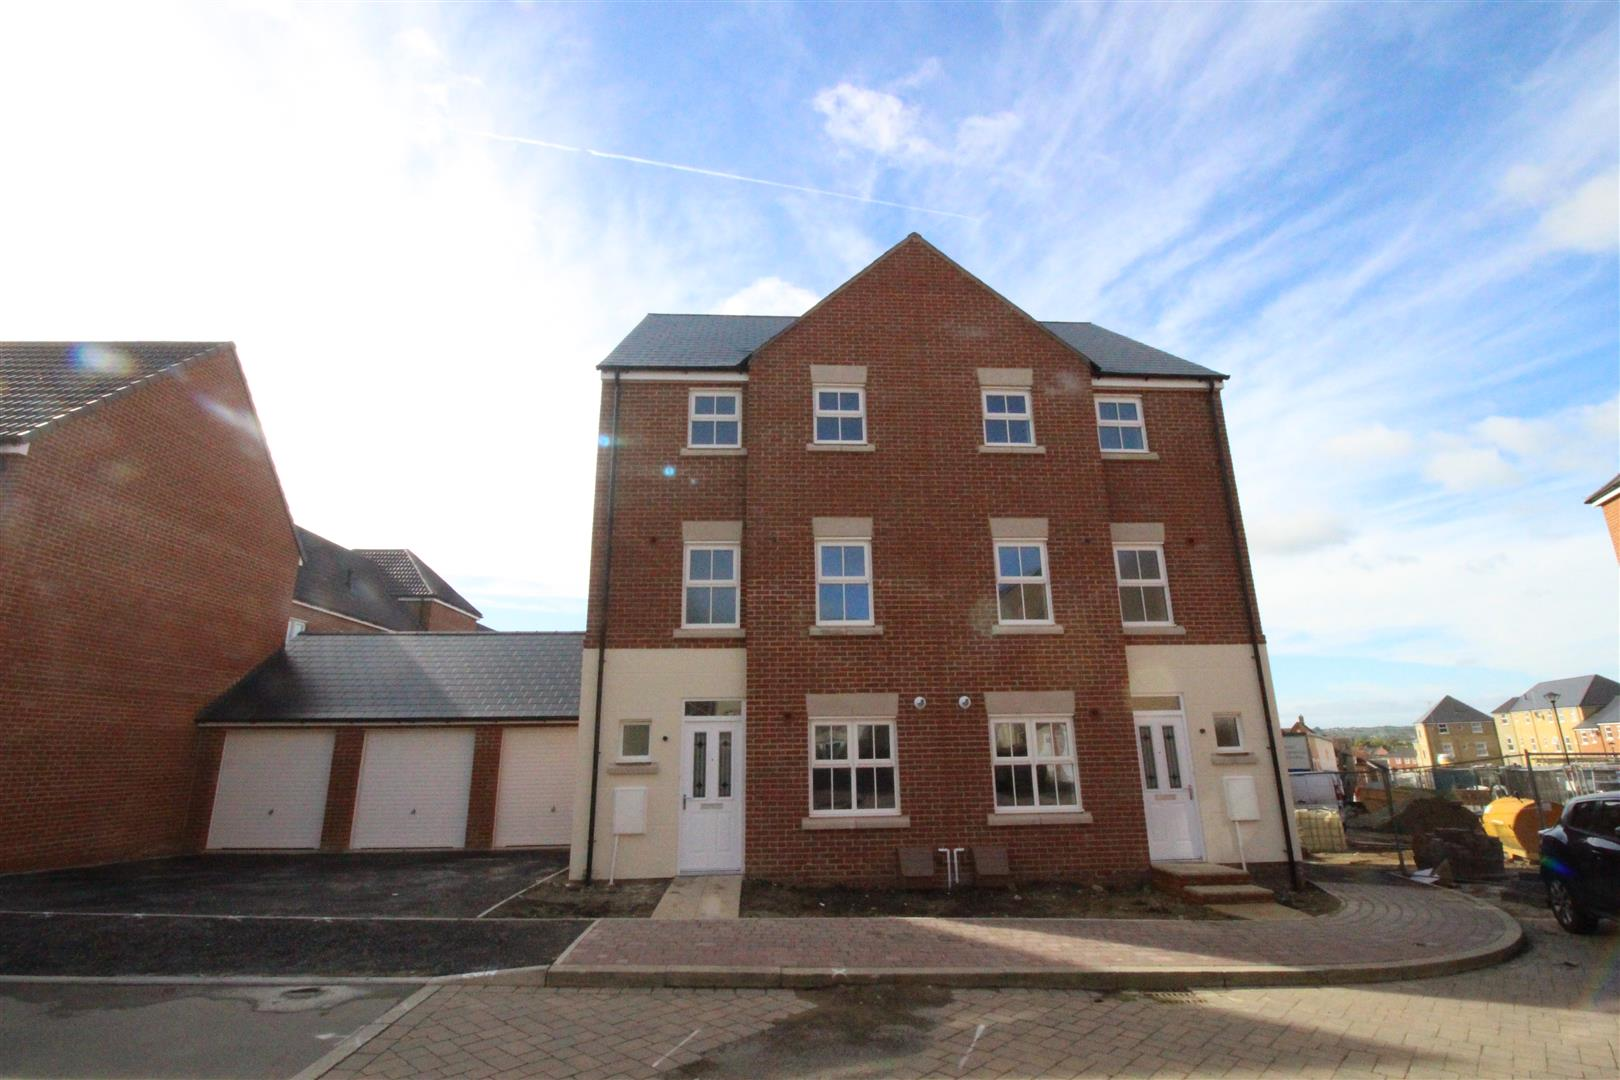 4 Bedrooms Terraced House for sale in Truscott Avenue, Redhouse, Swindon